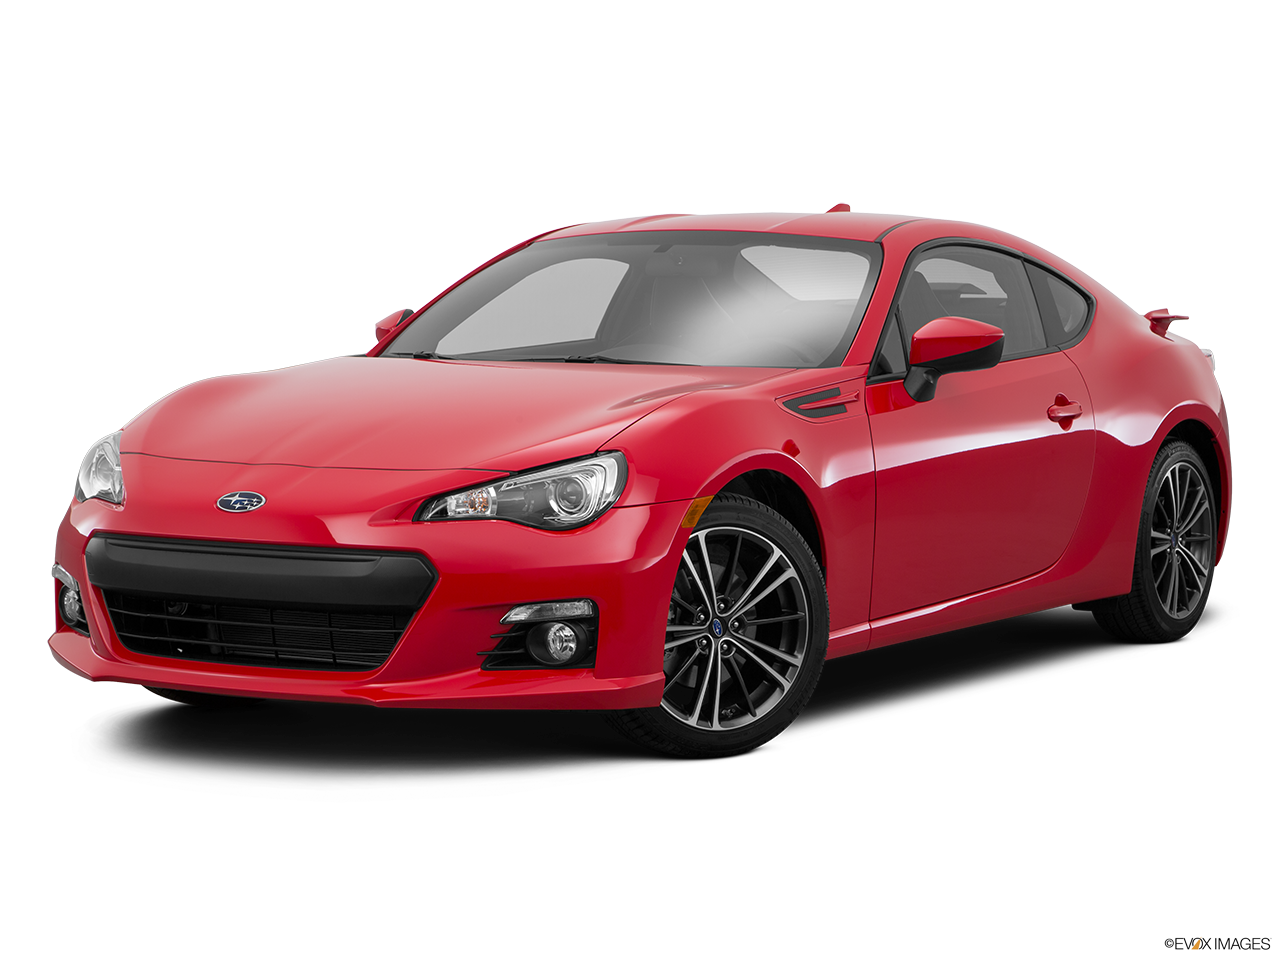 Test Drive A 2016 Subaru BRZ at Galpin Subaru in Los Angeles